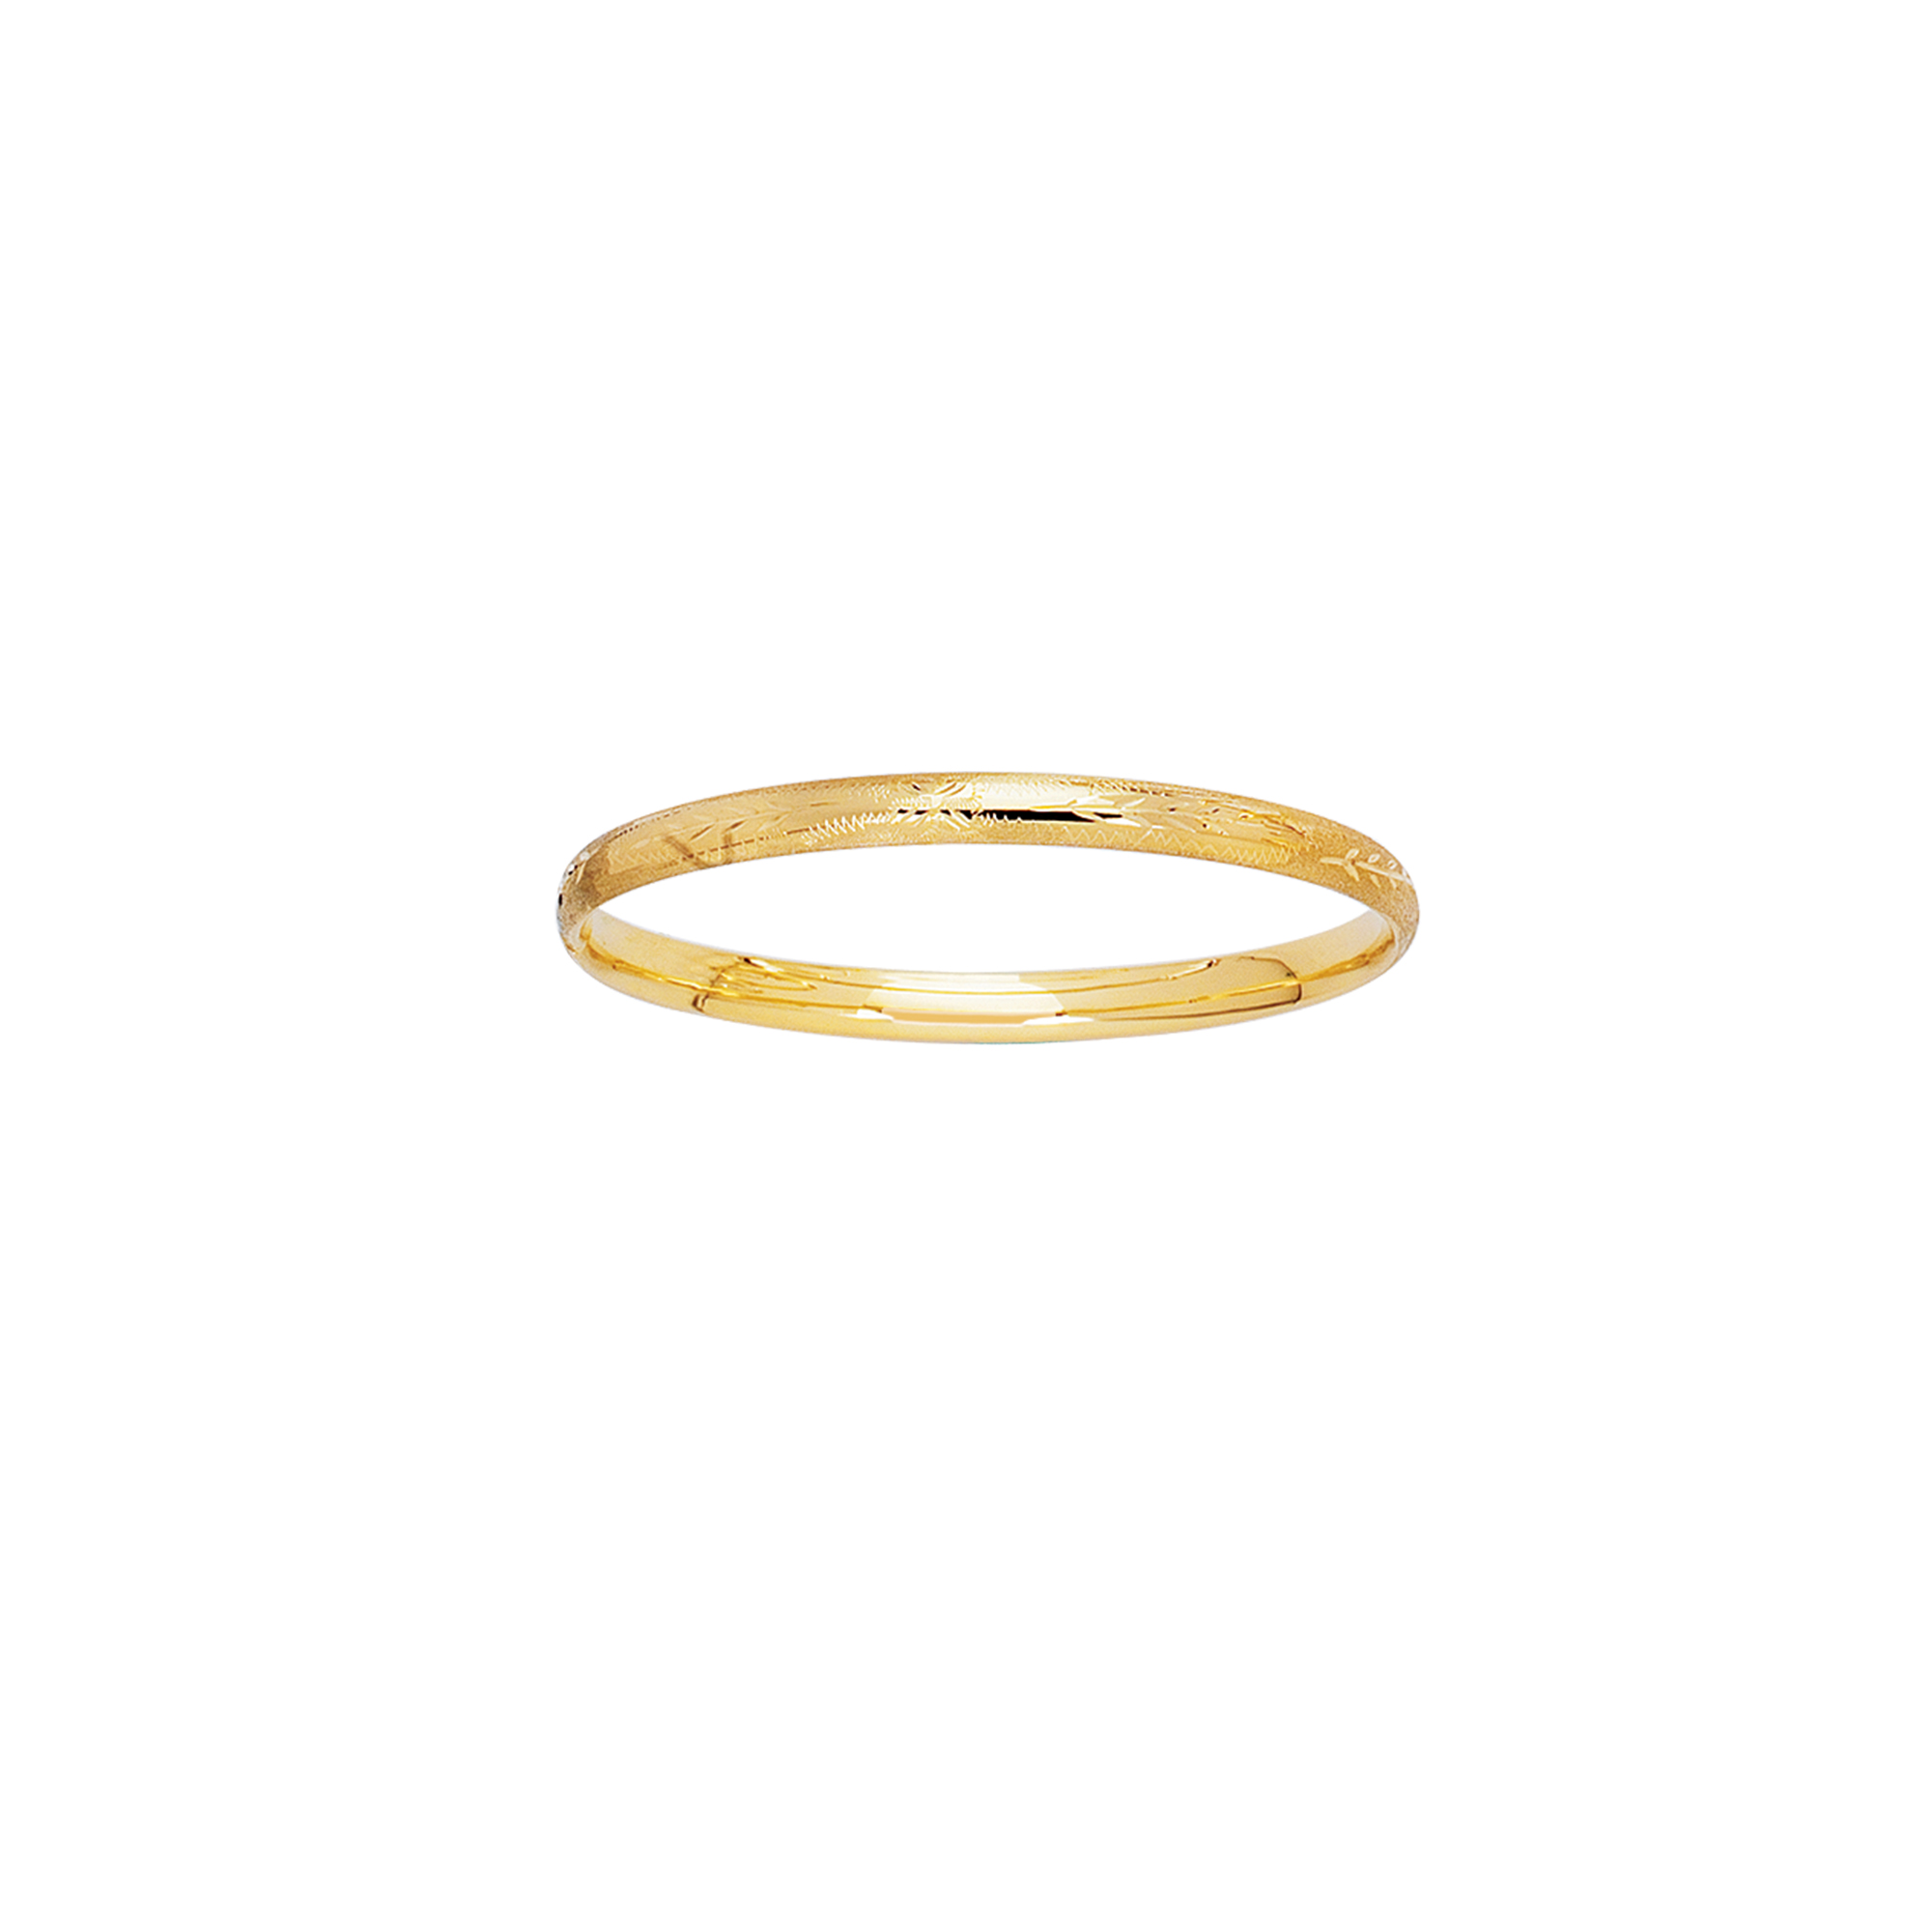 "14k Yellow Gold 3MM Engraved Baby Children Kids Bangle Bracelet 5.5"" by JewelStop"